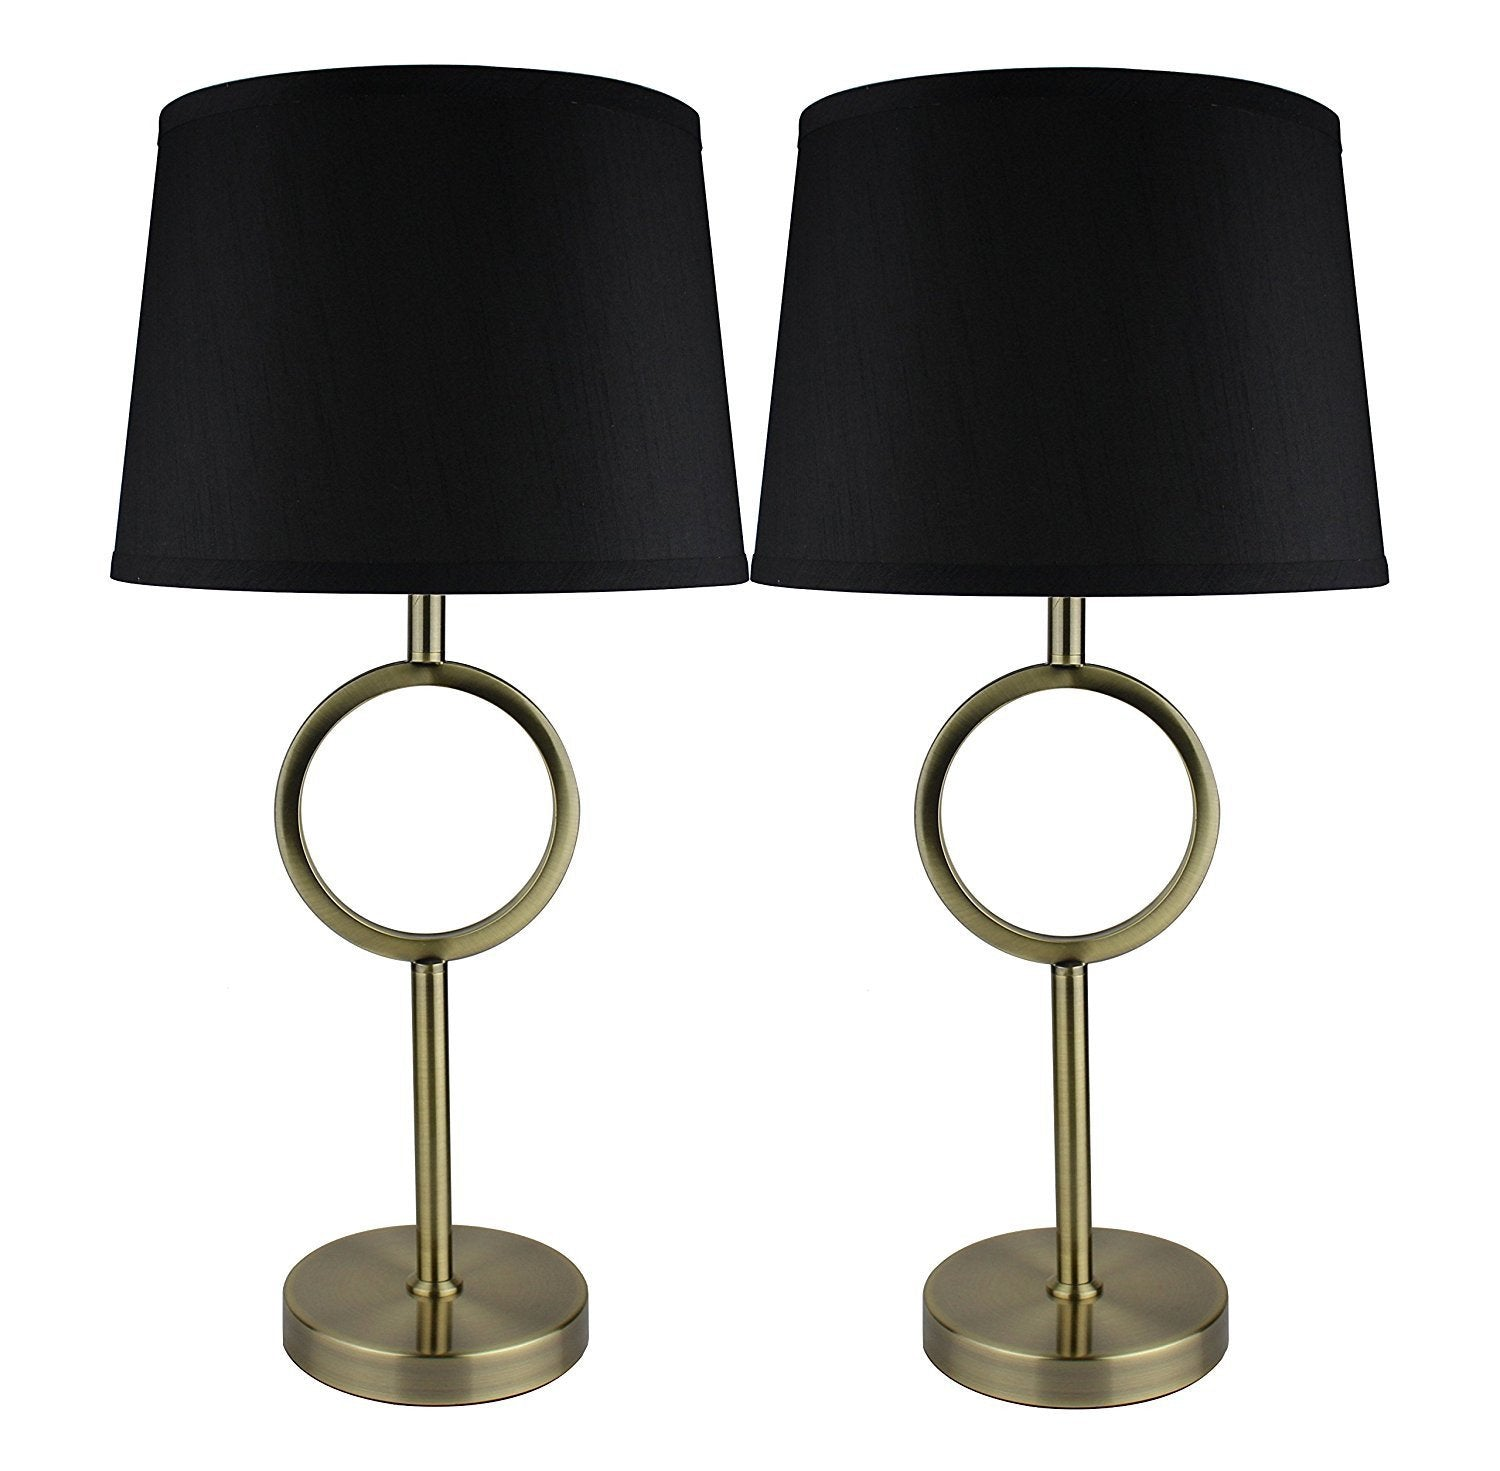 Set of 2 Madison Table Lamps with Shades